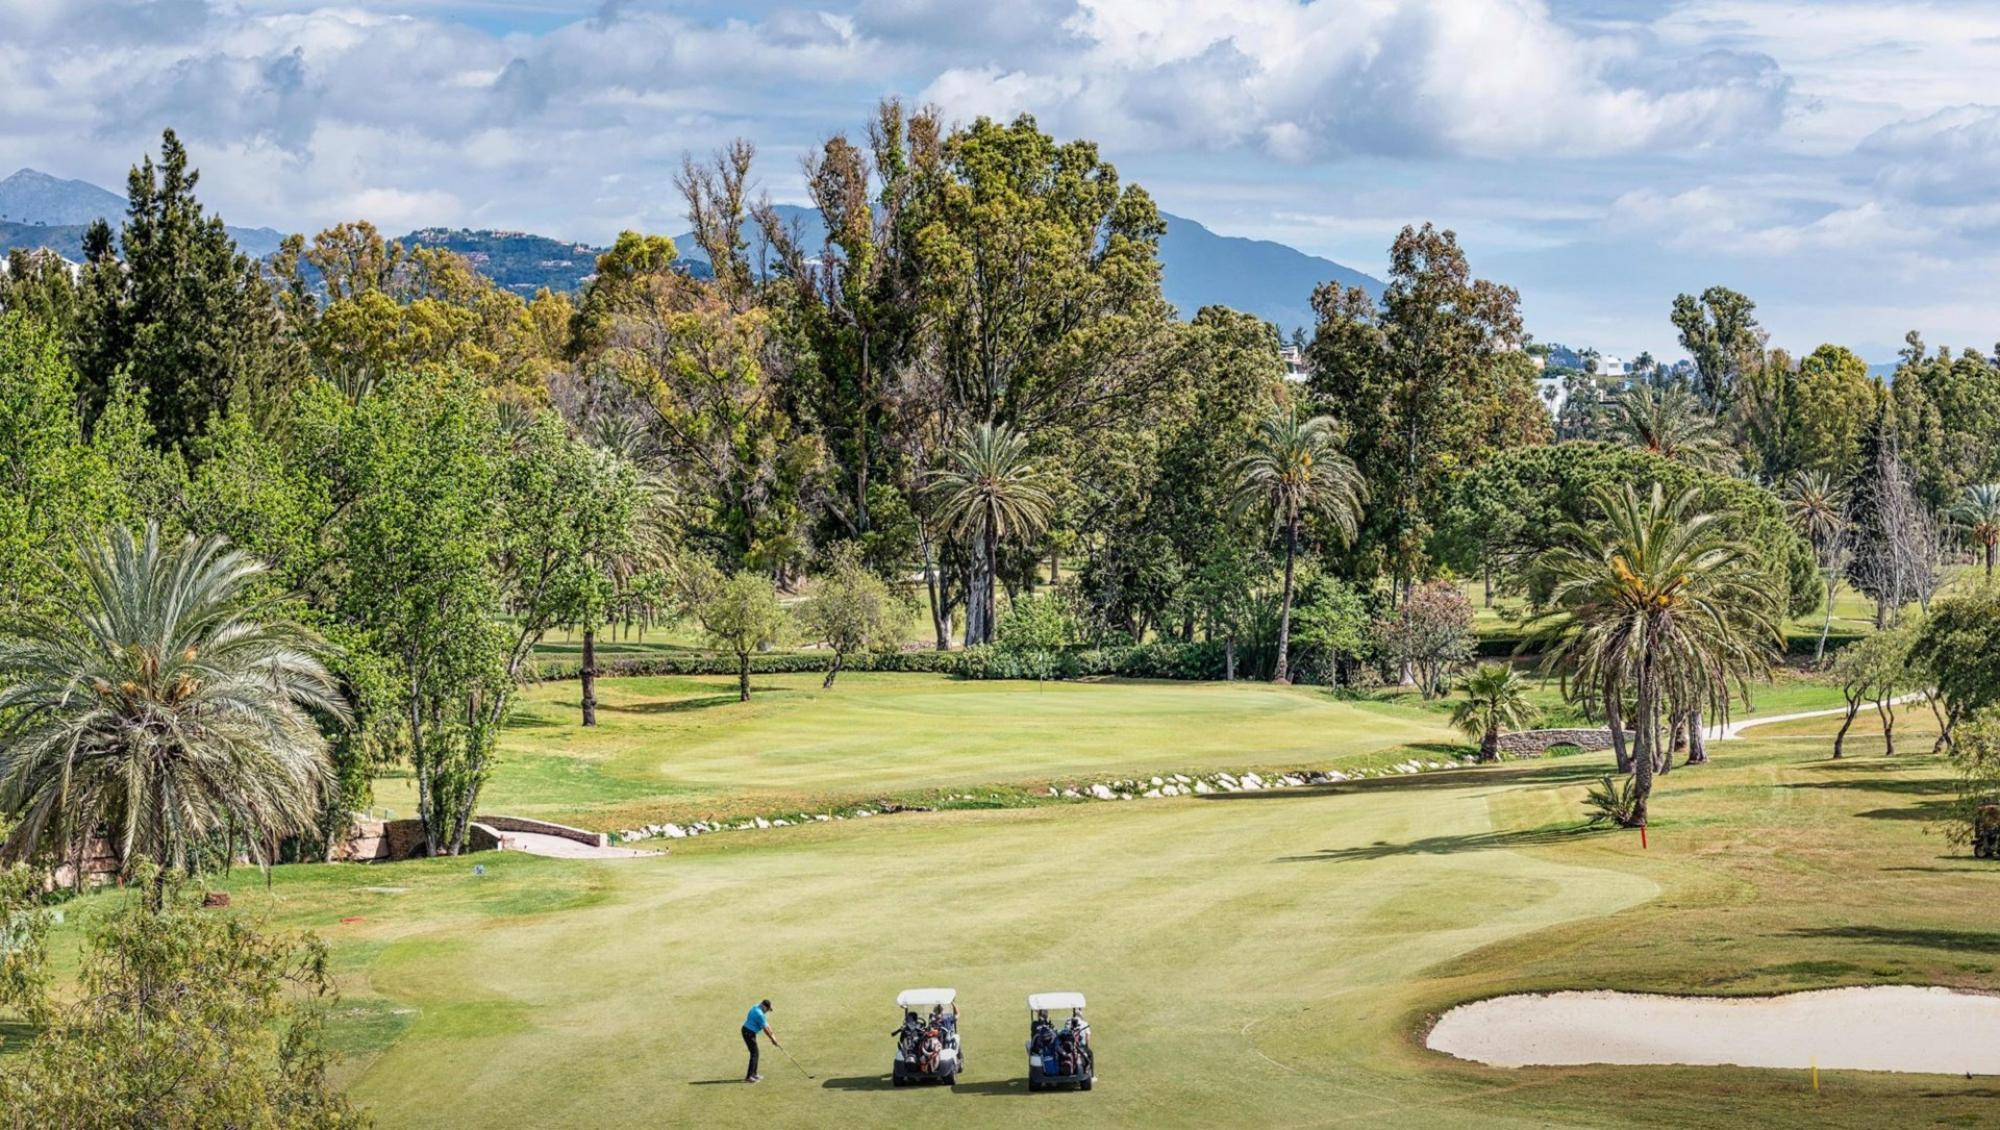 The El Paraiso Golf Club's impressive golf course in incredible Costa Del Sol.